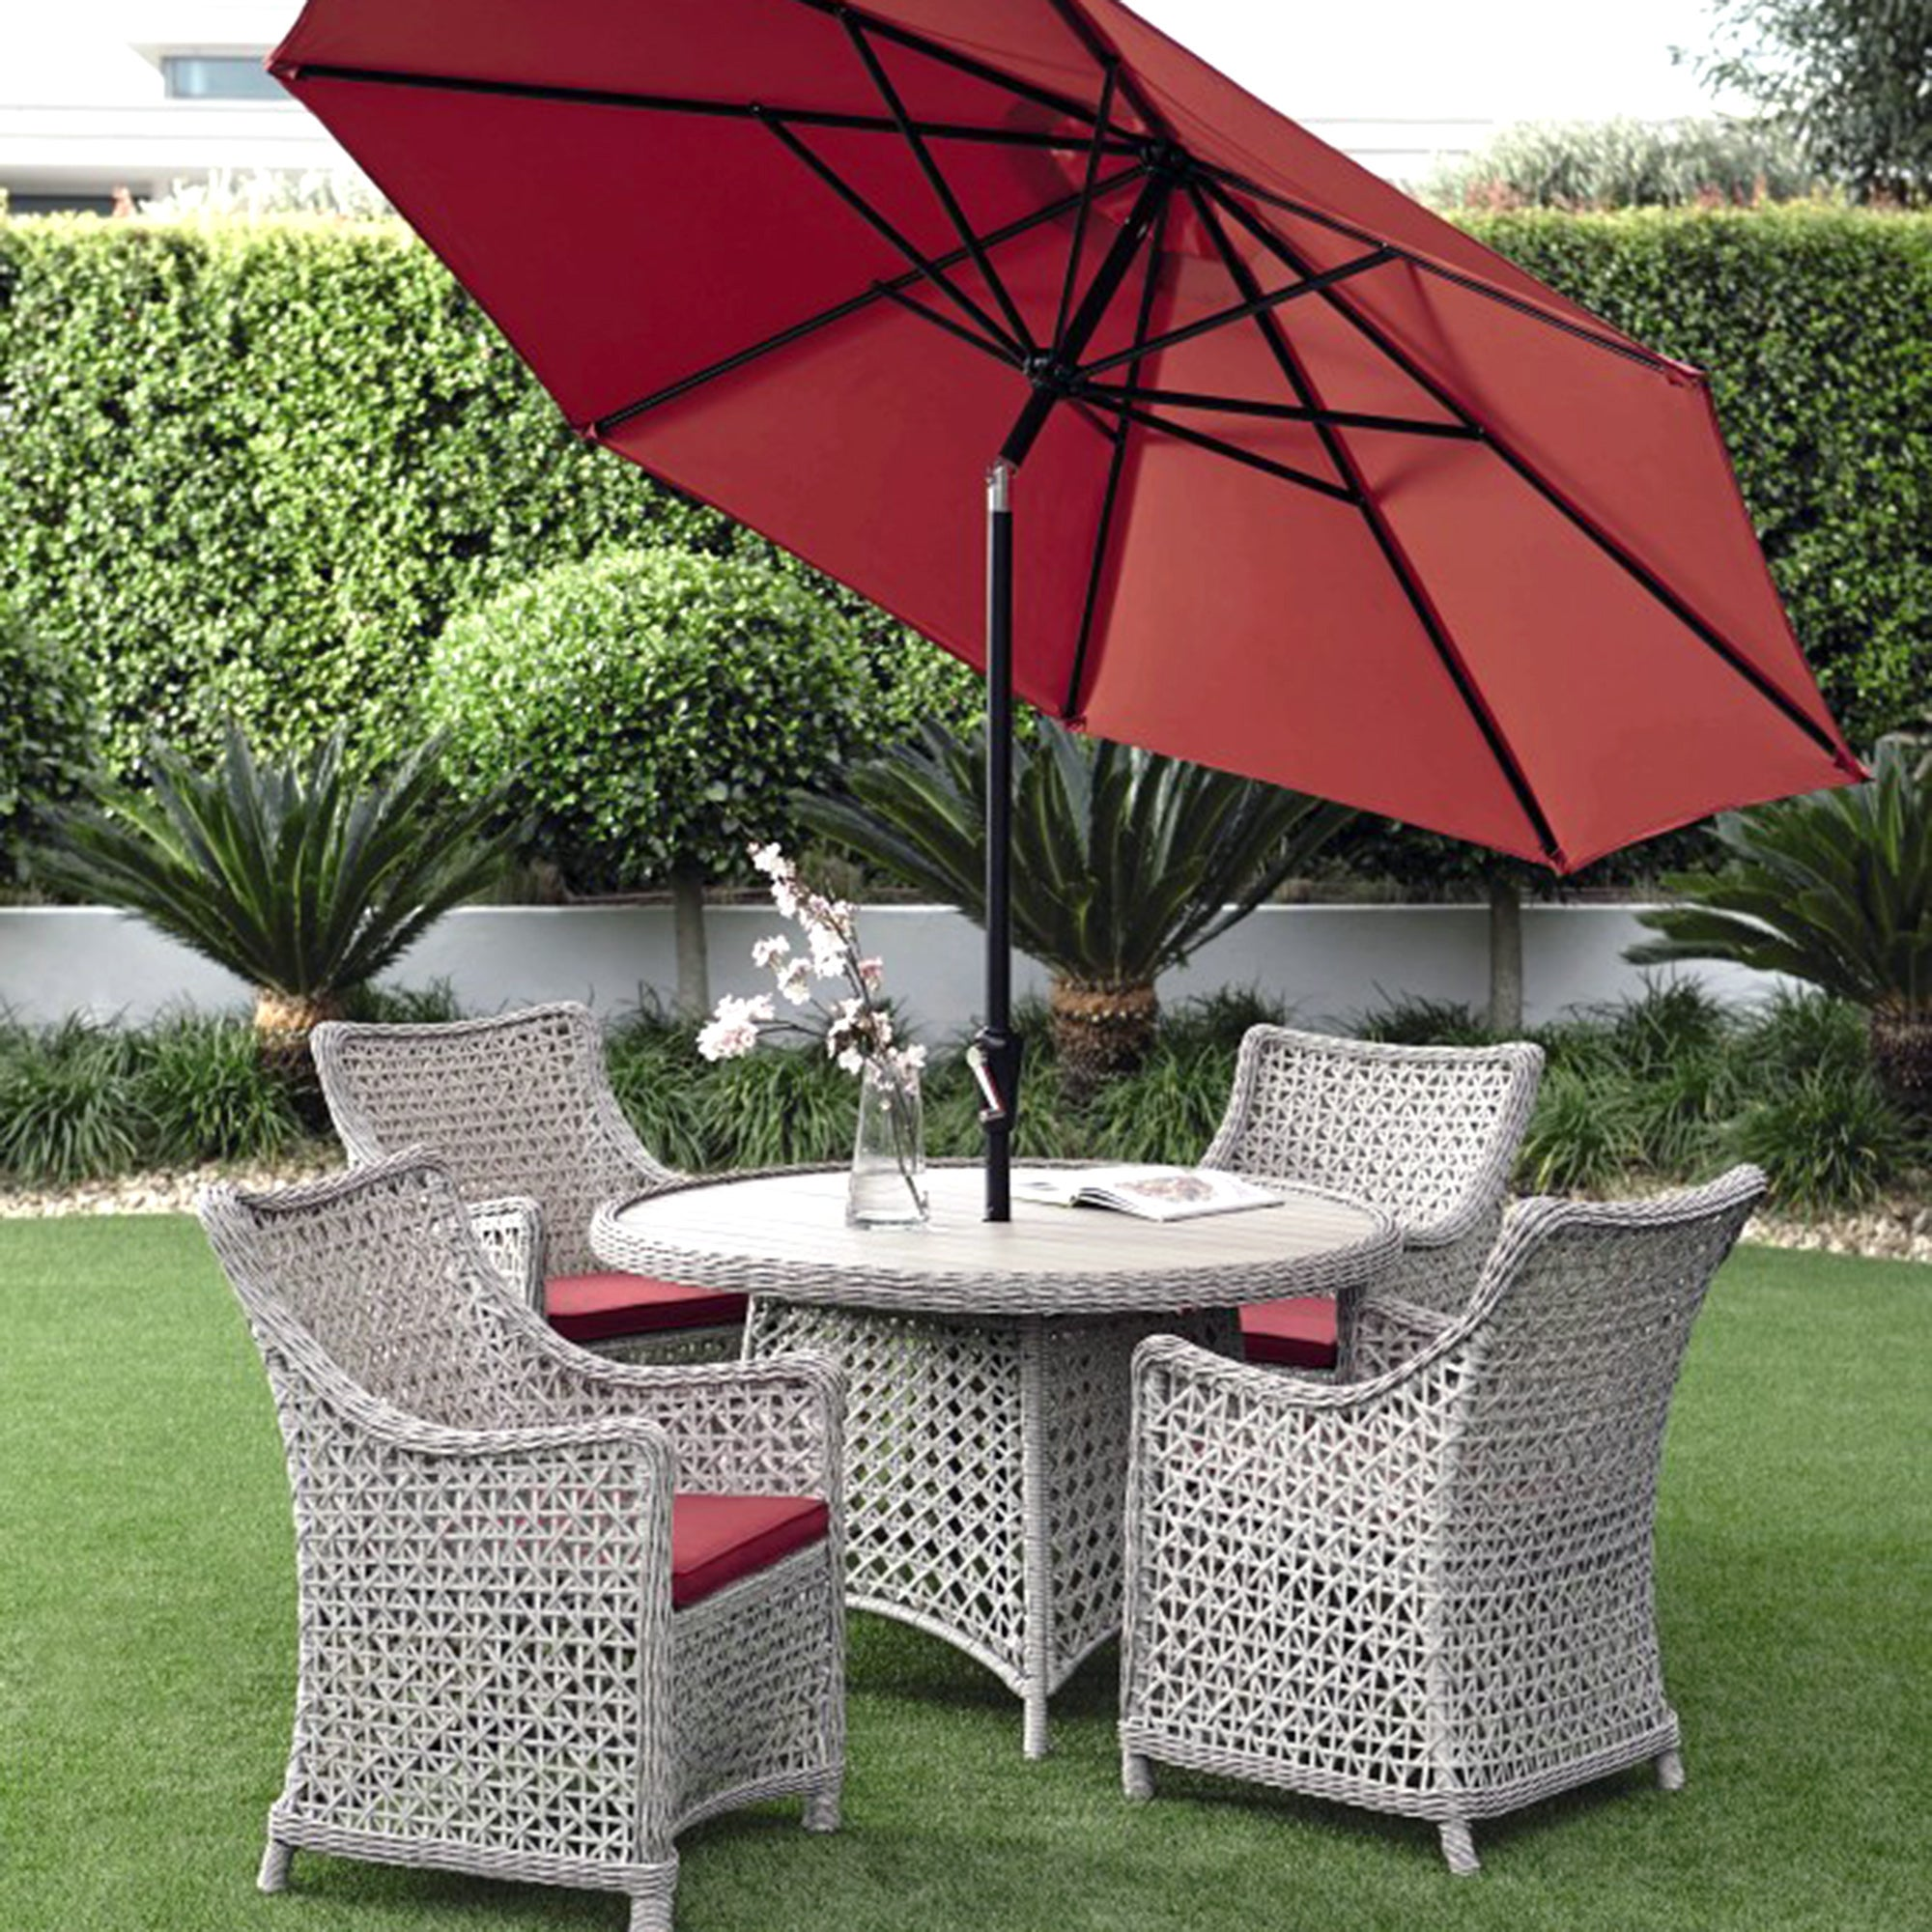 Antibes Deluxe 4 Seater Garden Dining Furniture with Parasol